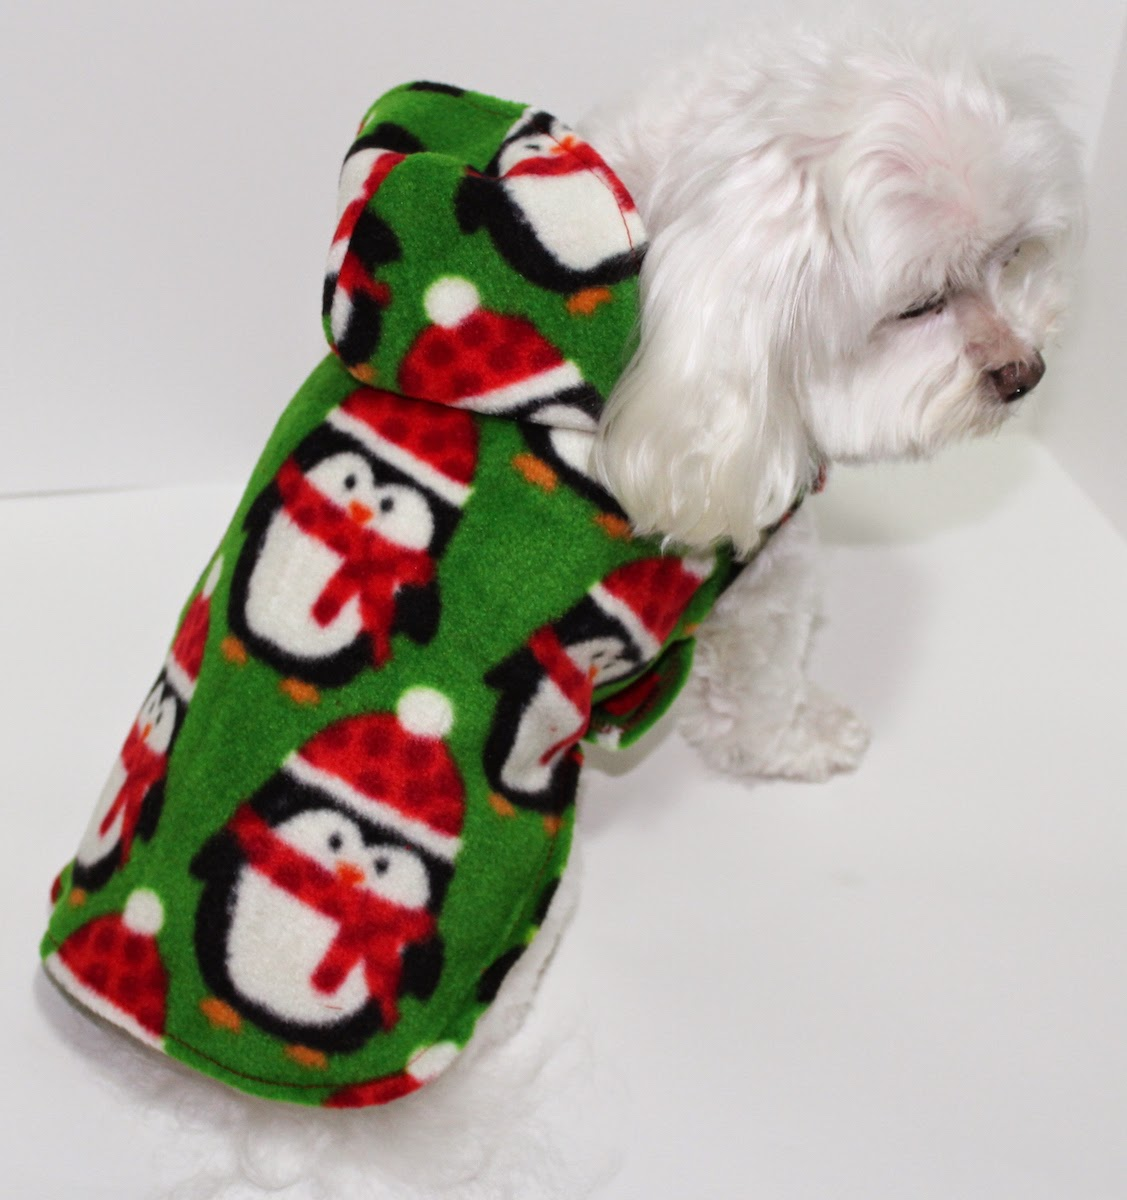 adorable cute dog hoodie with penguin print on green fleece